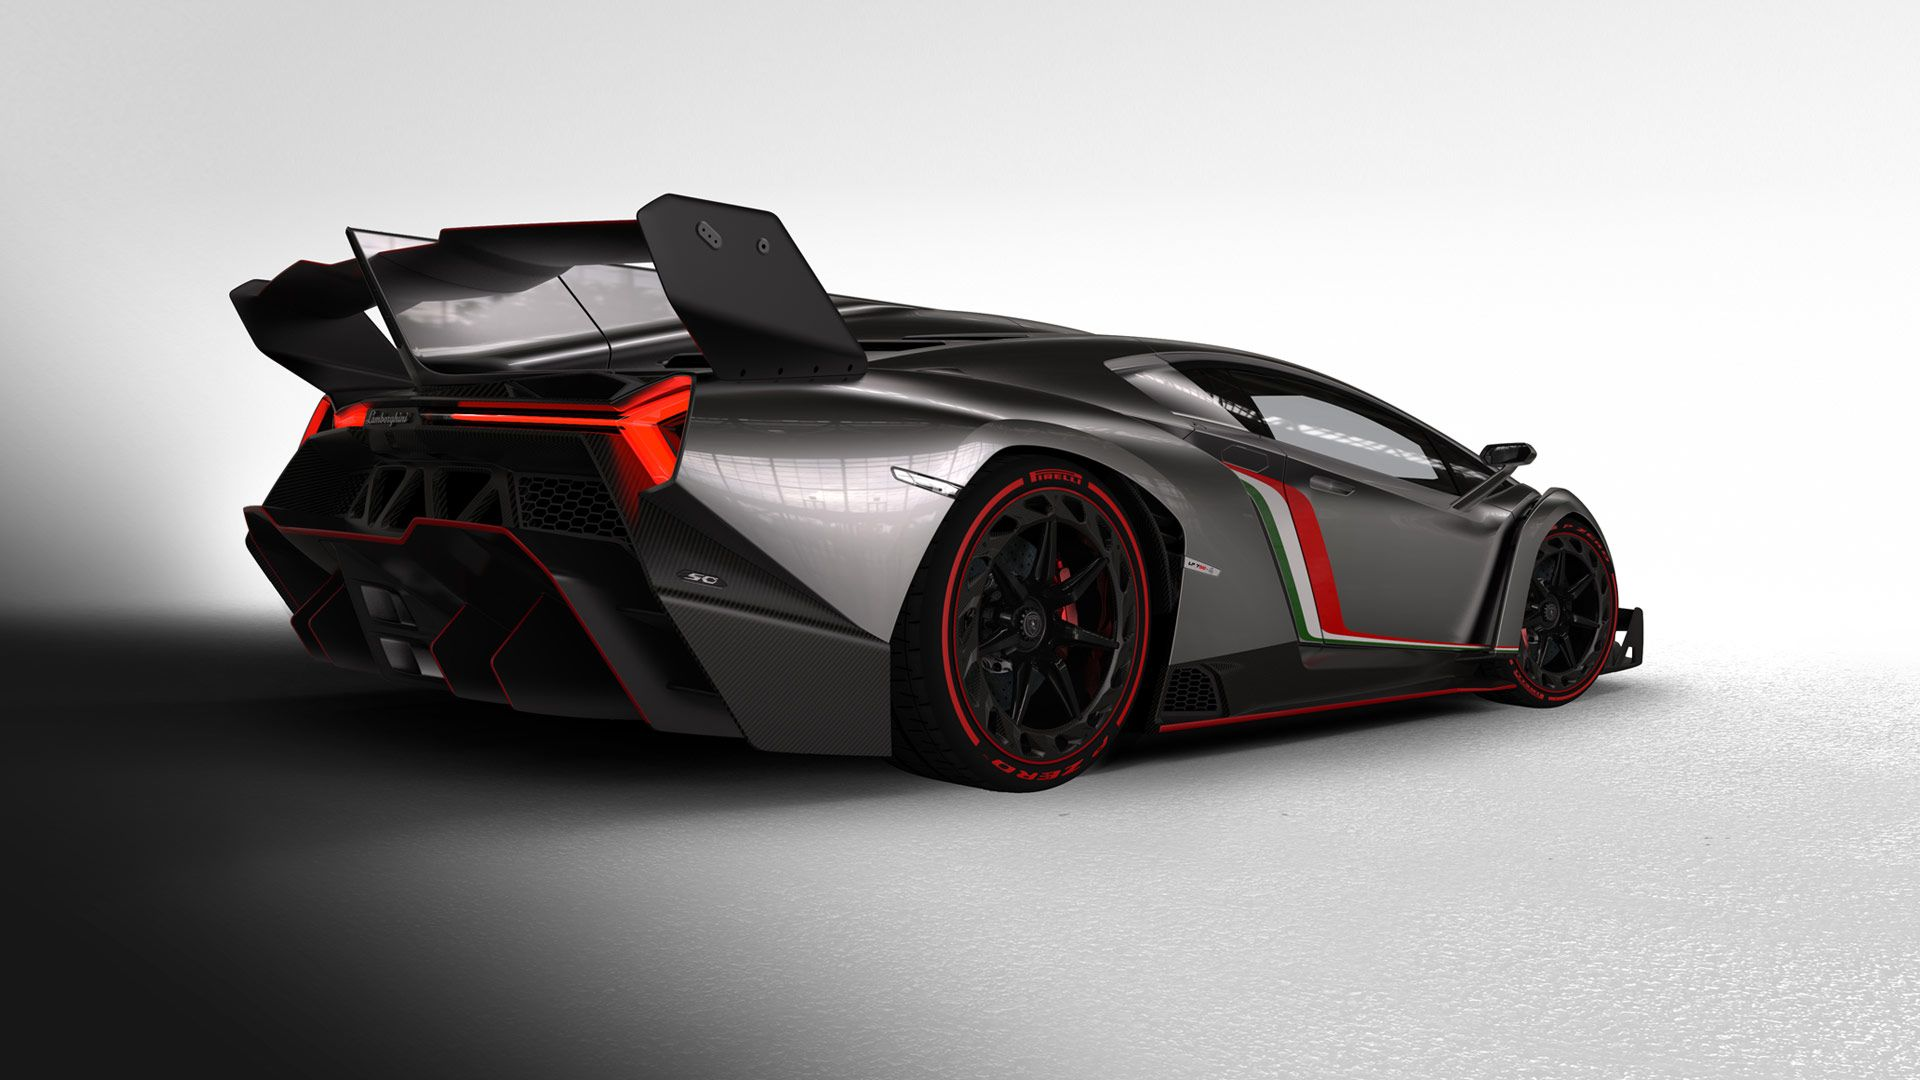 the lamborghini veneno lamborghinis new 4 million dollar car only 3 will be made for buyers who have already payed for this new car